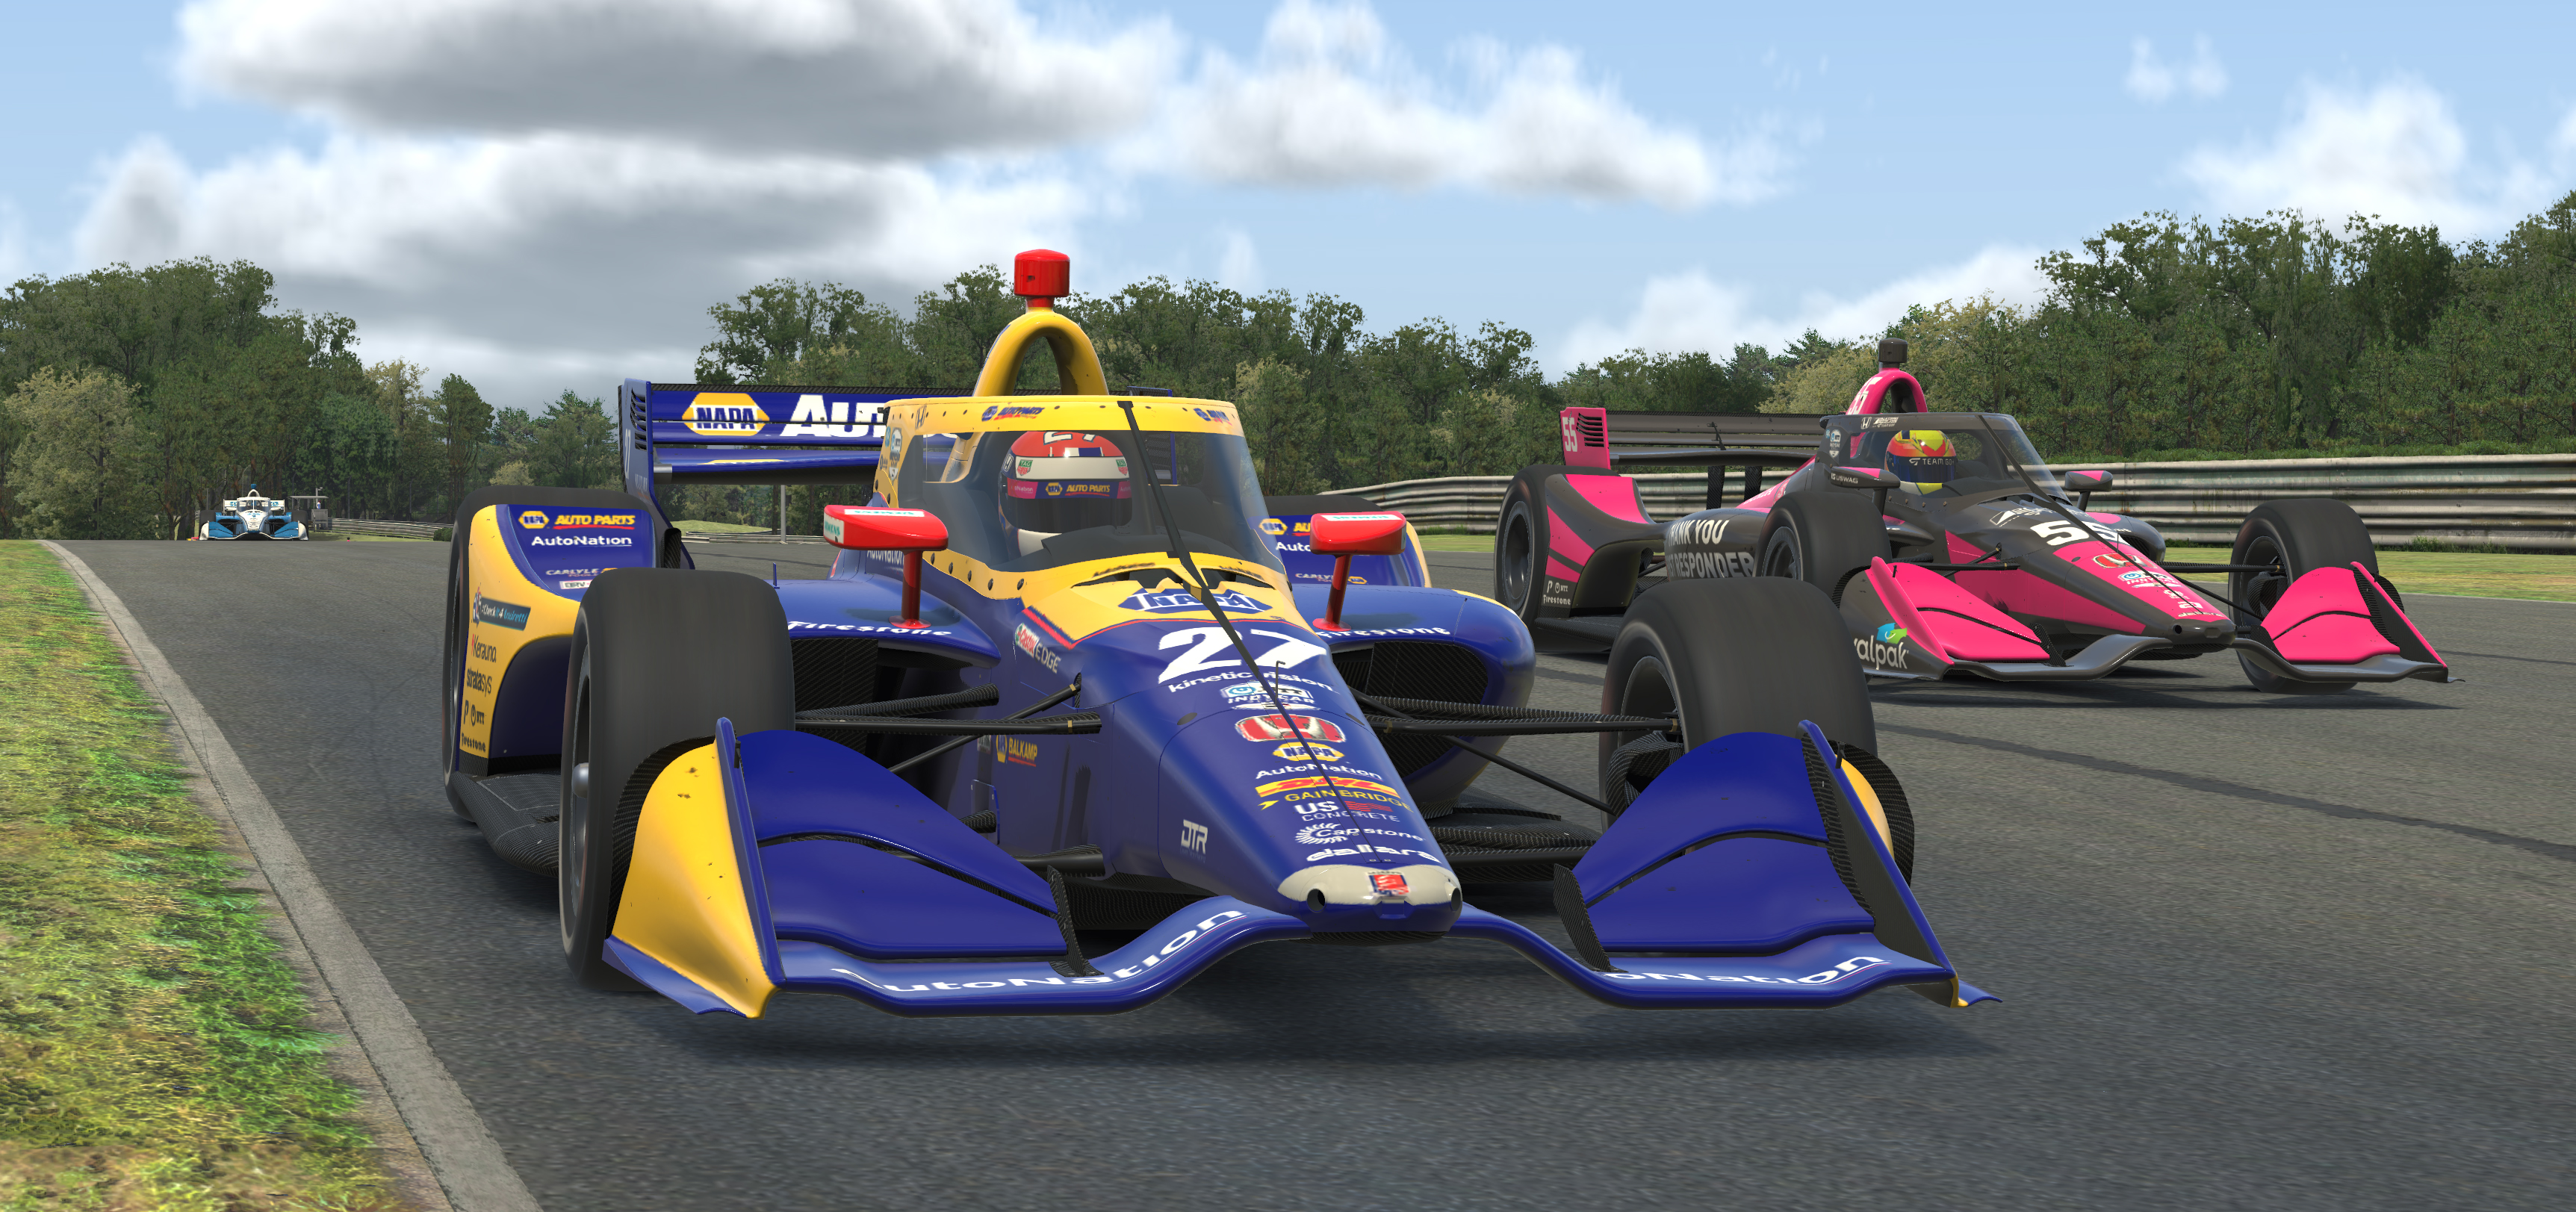 IndyCar iRacing photo gallery from Barber Motorsports Park - NBC Sports